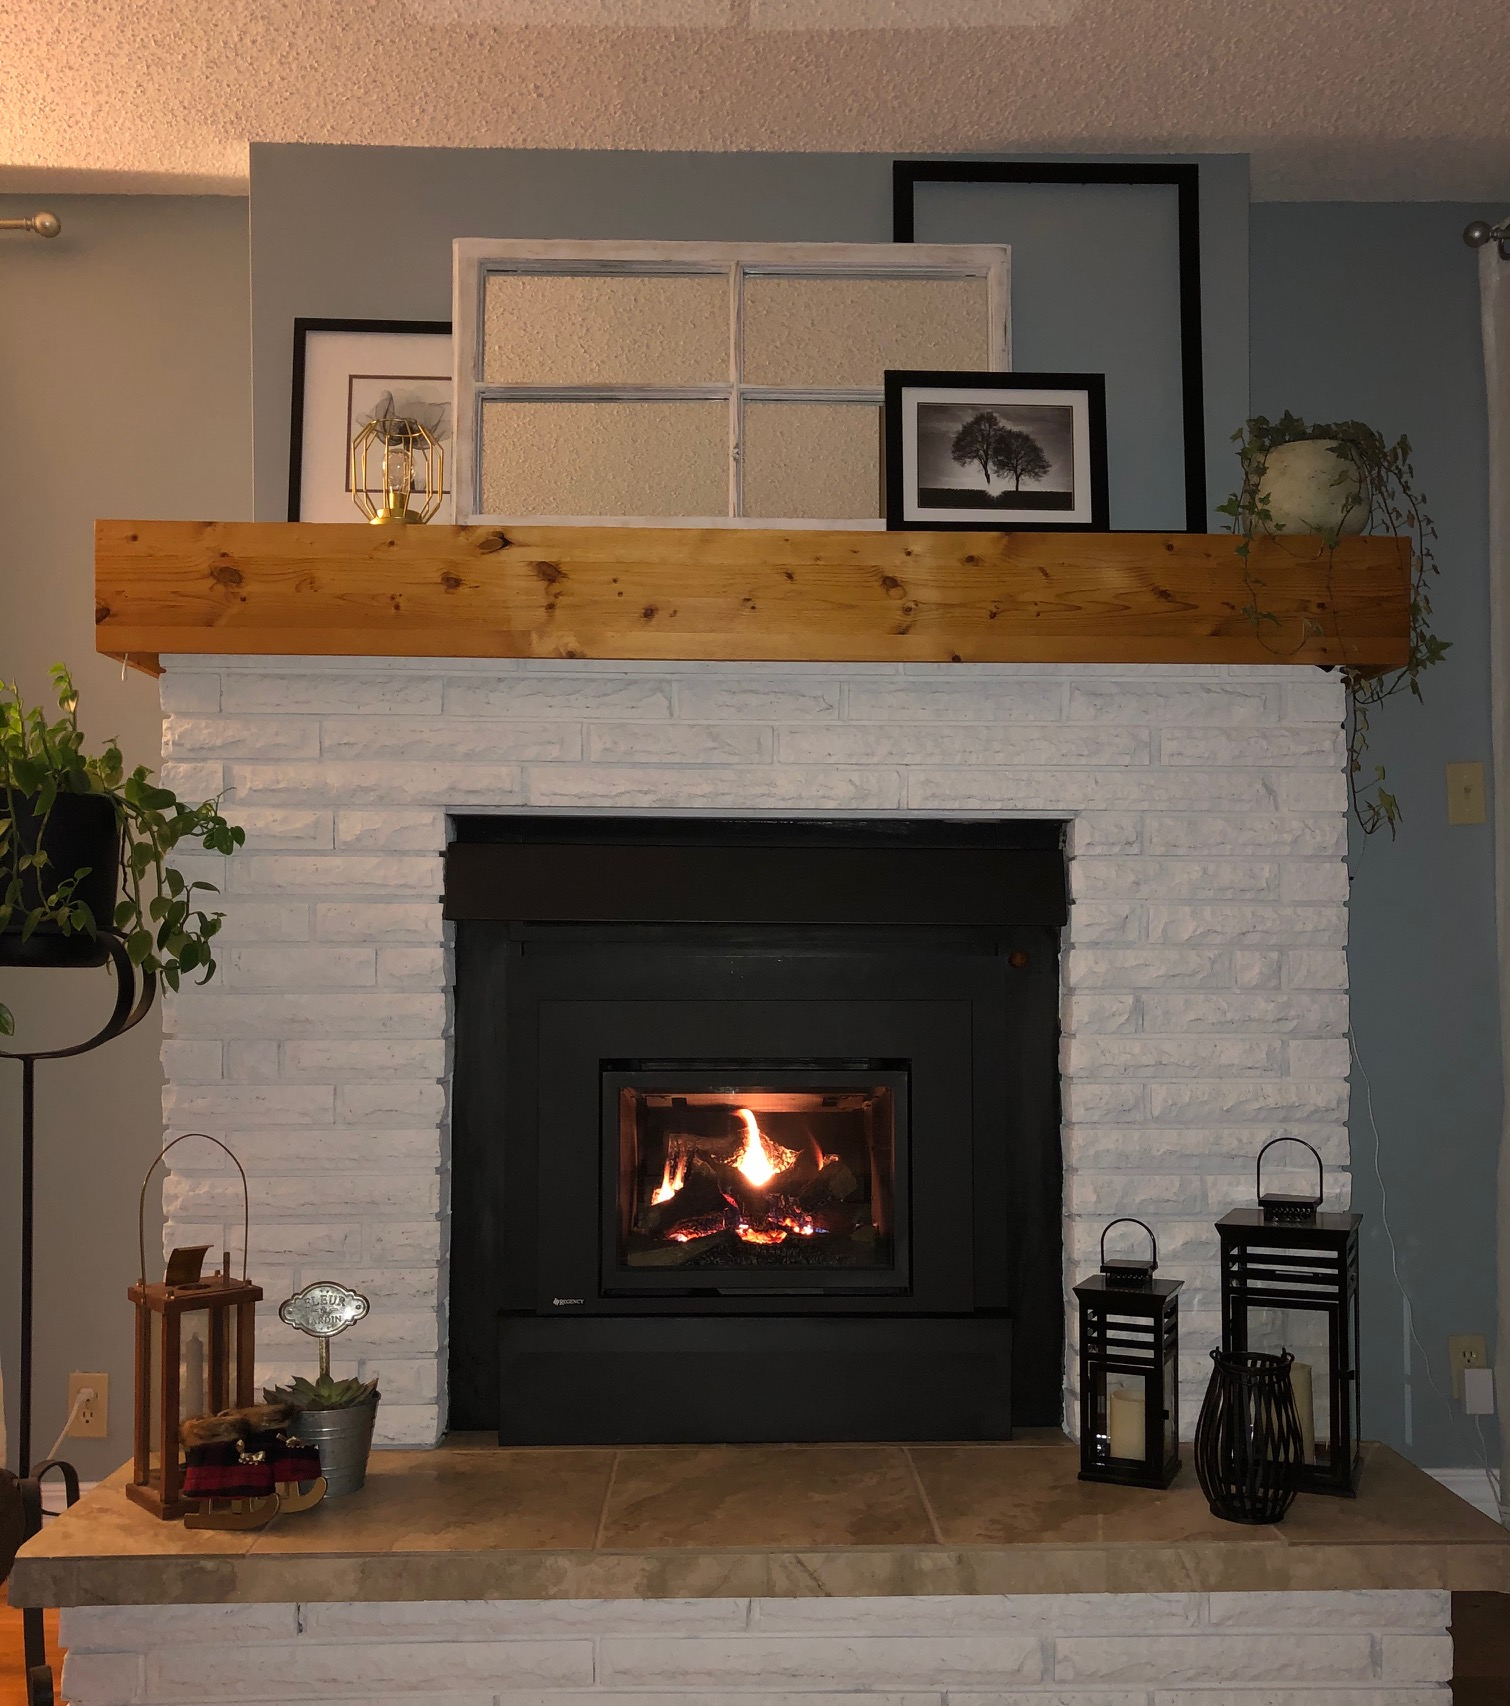 Fireplace Installed and functionally beautiful. What a difference!